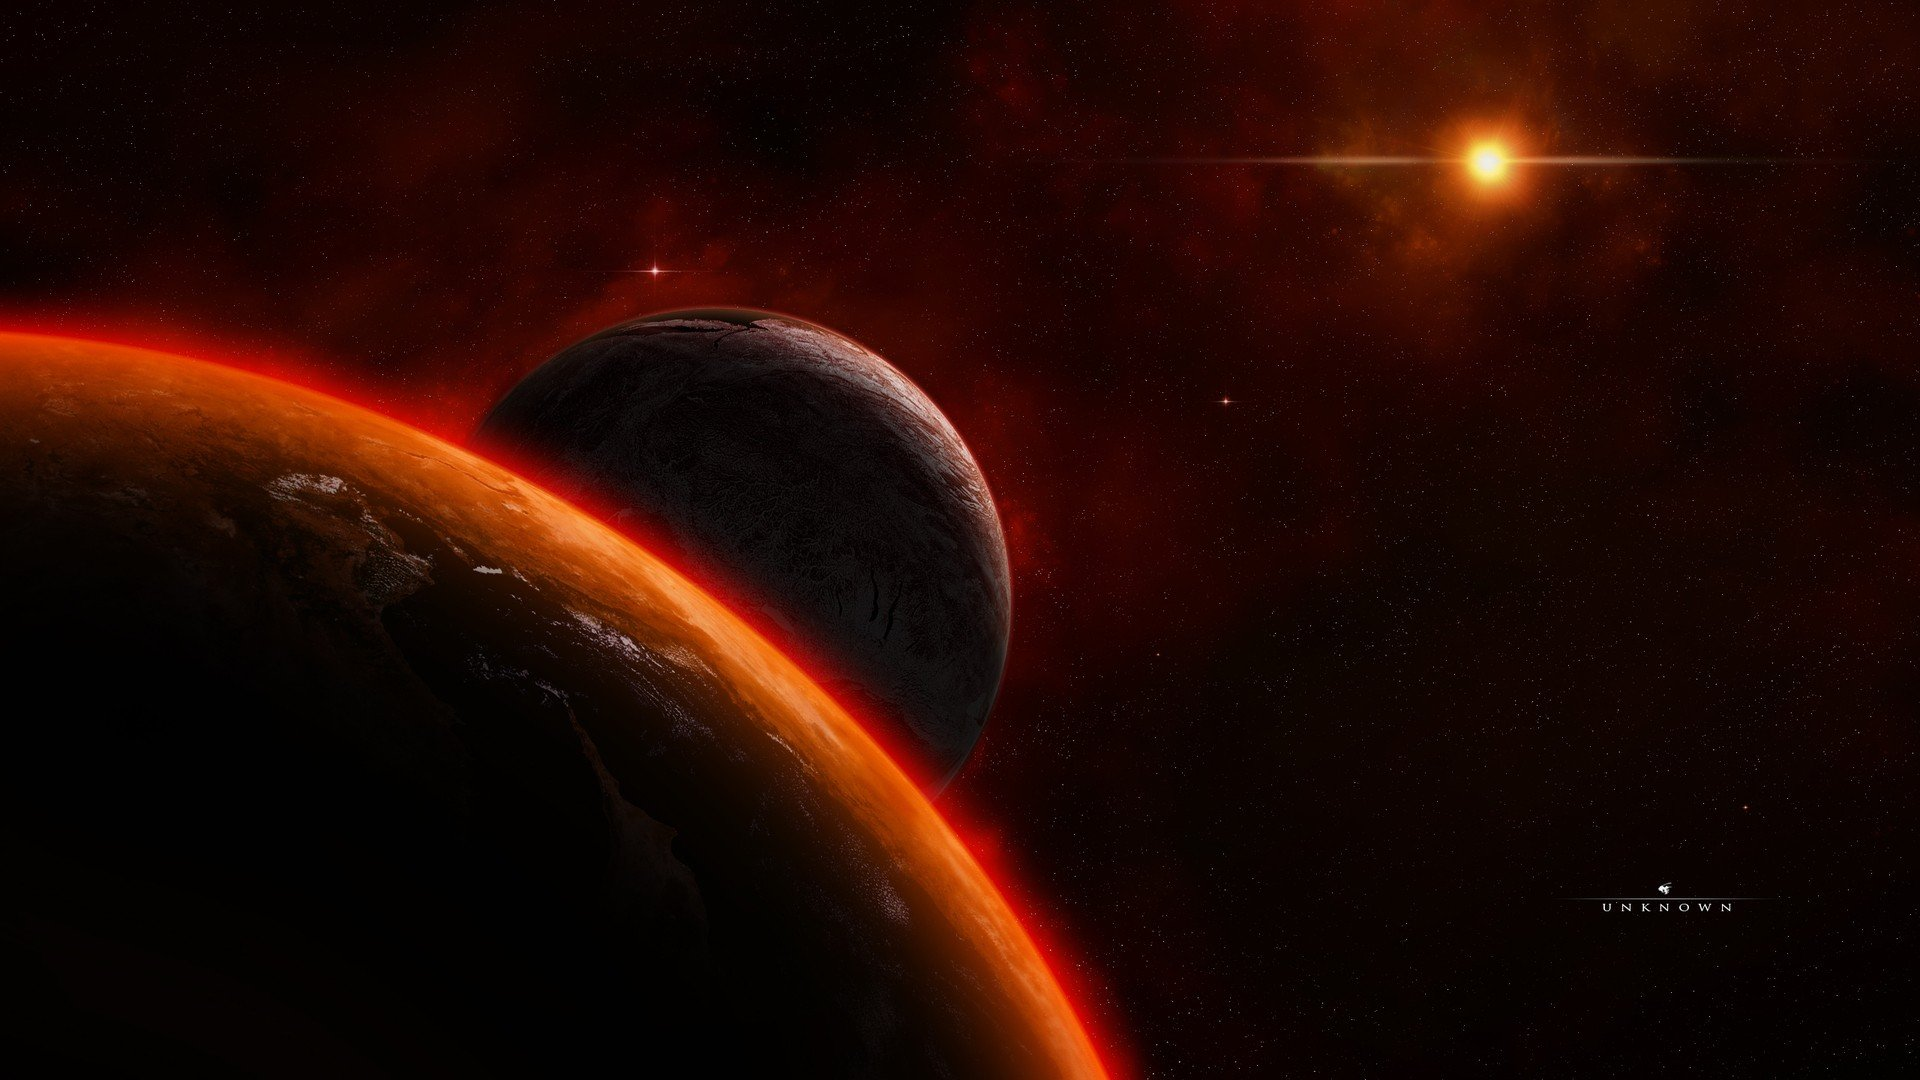 outer space artwork 3d HD Wallpaper   Space Planets 1263250 1920x1080